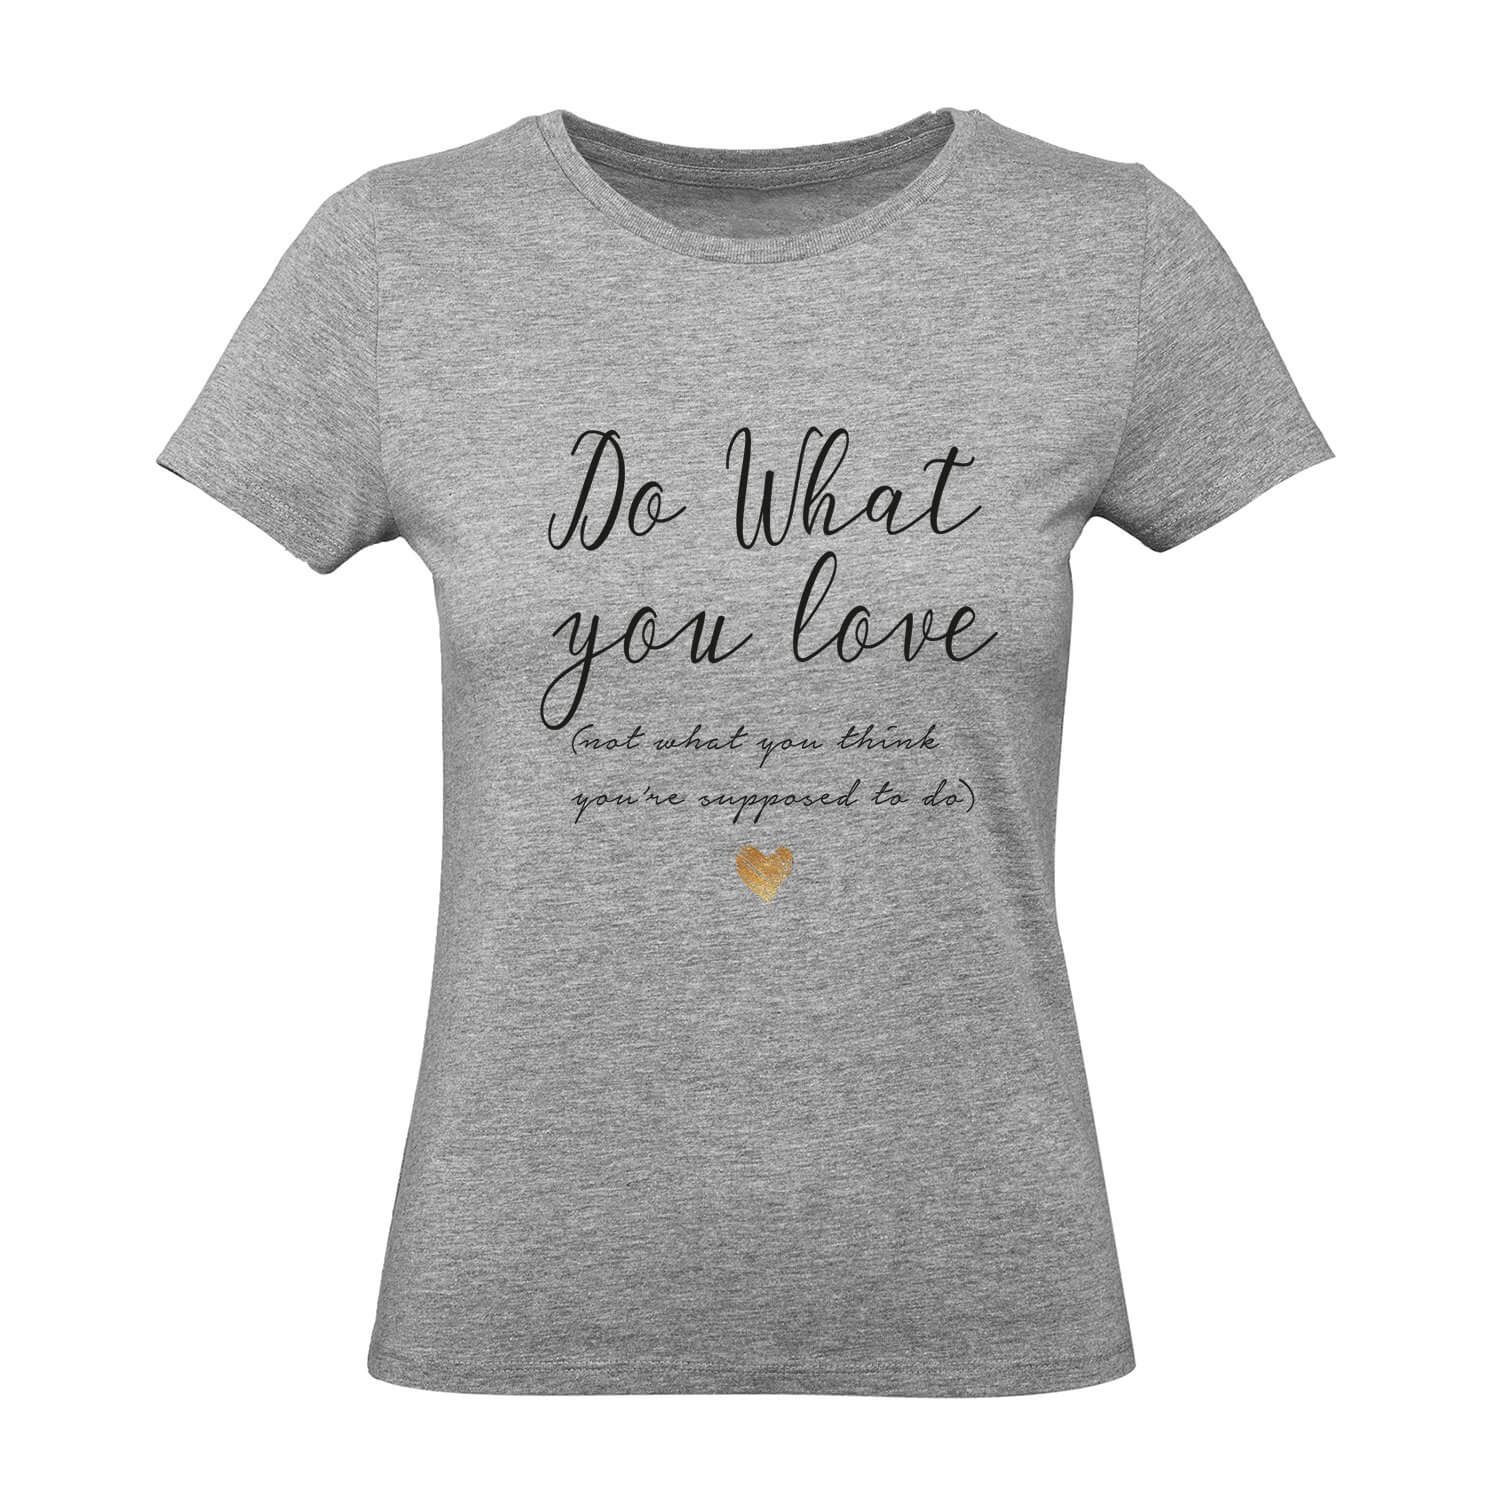 Do What You Love Womens Tee